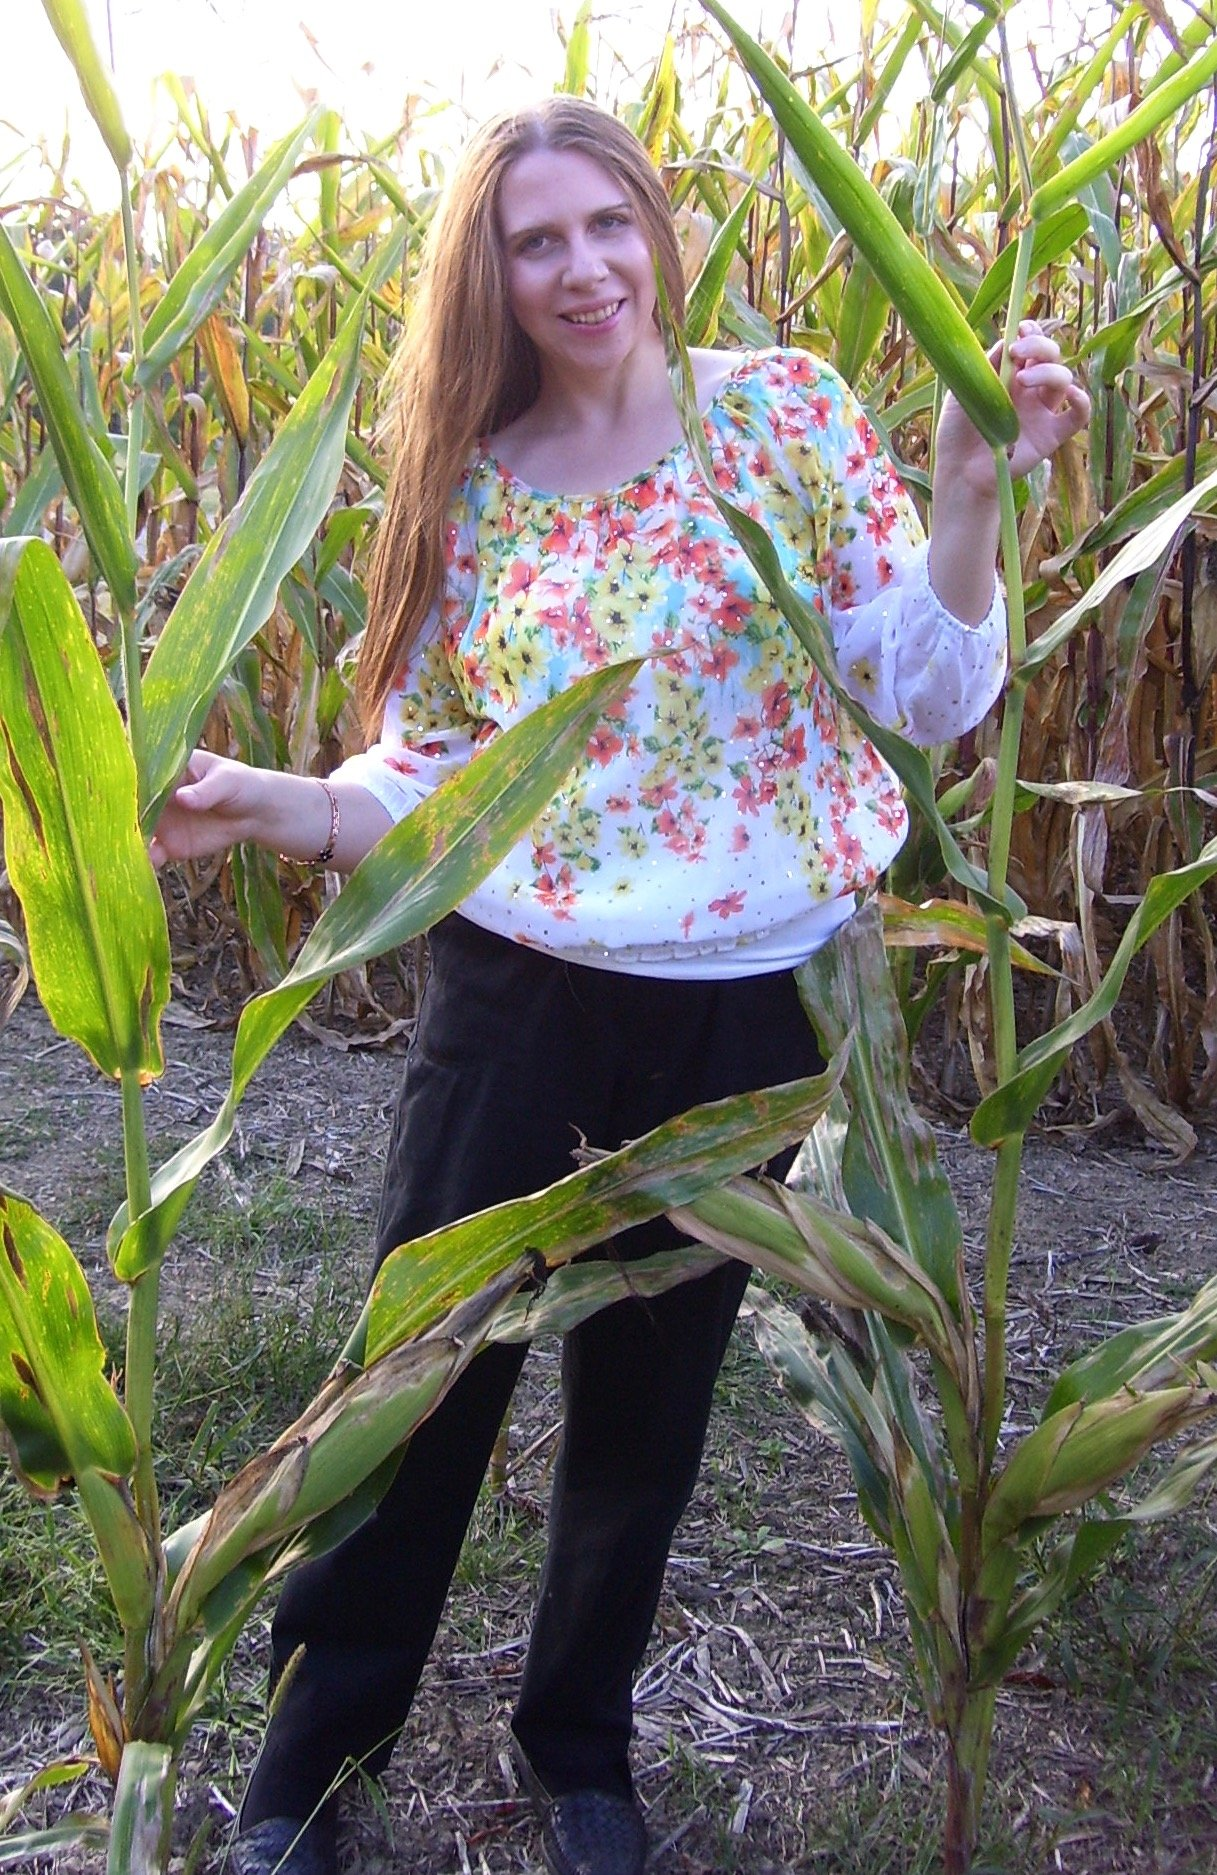 Standing in the Cornfield